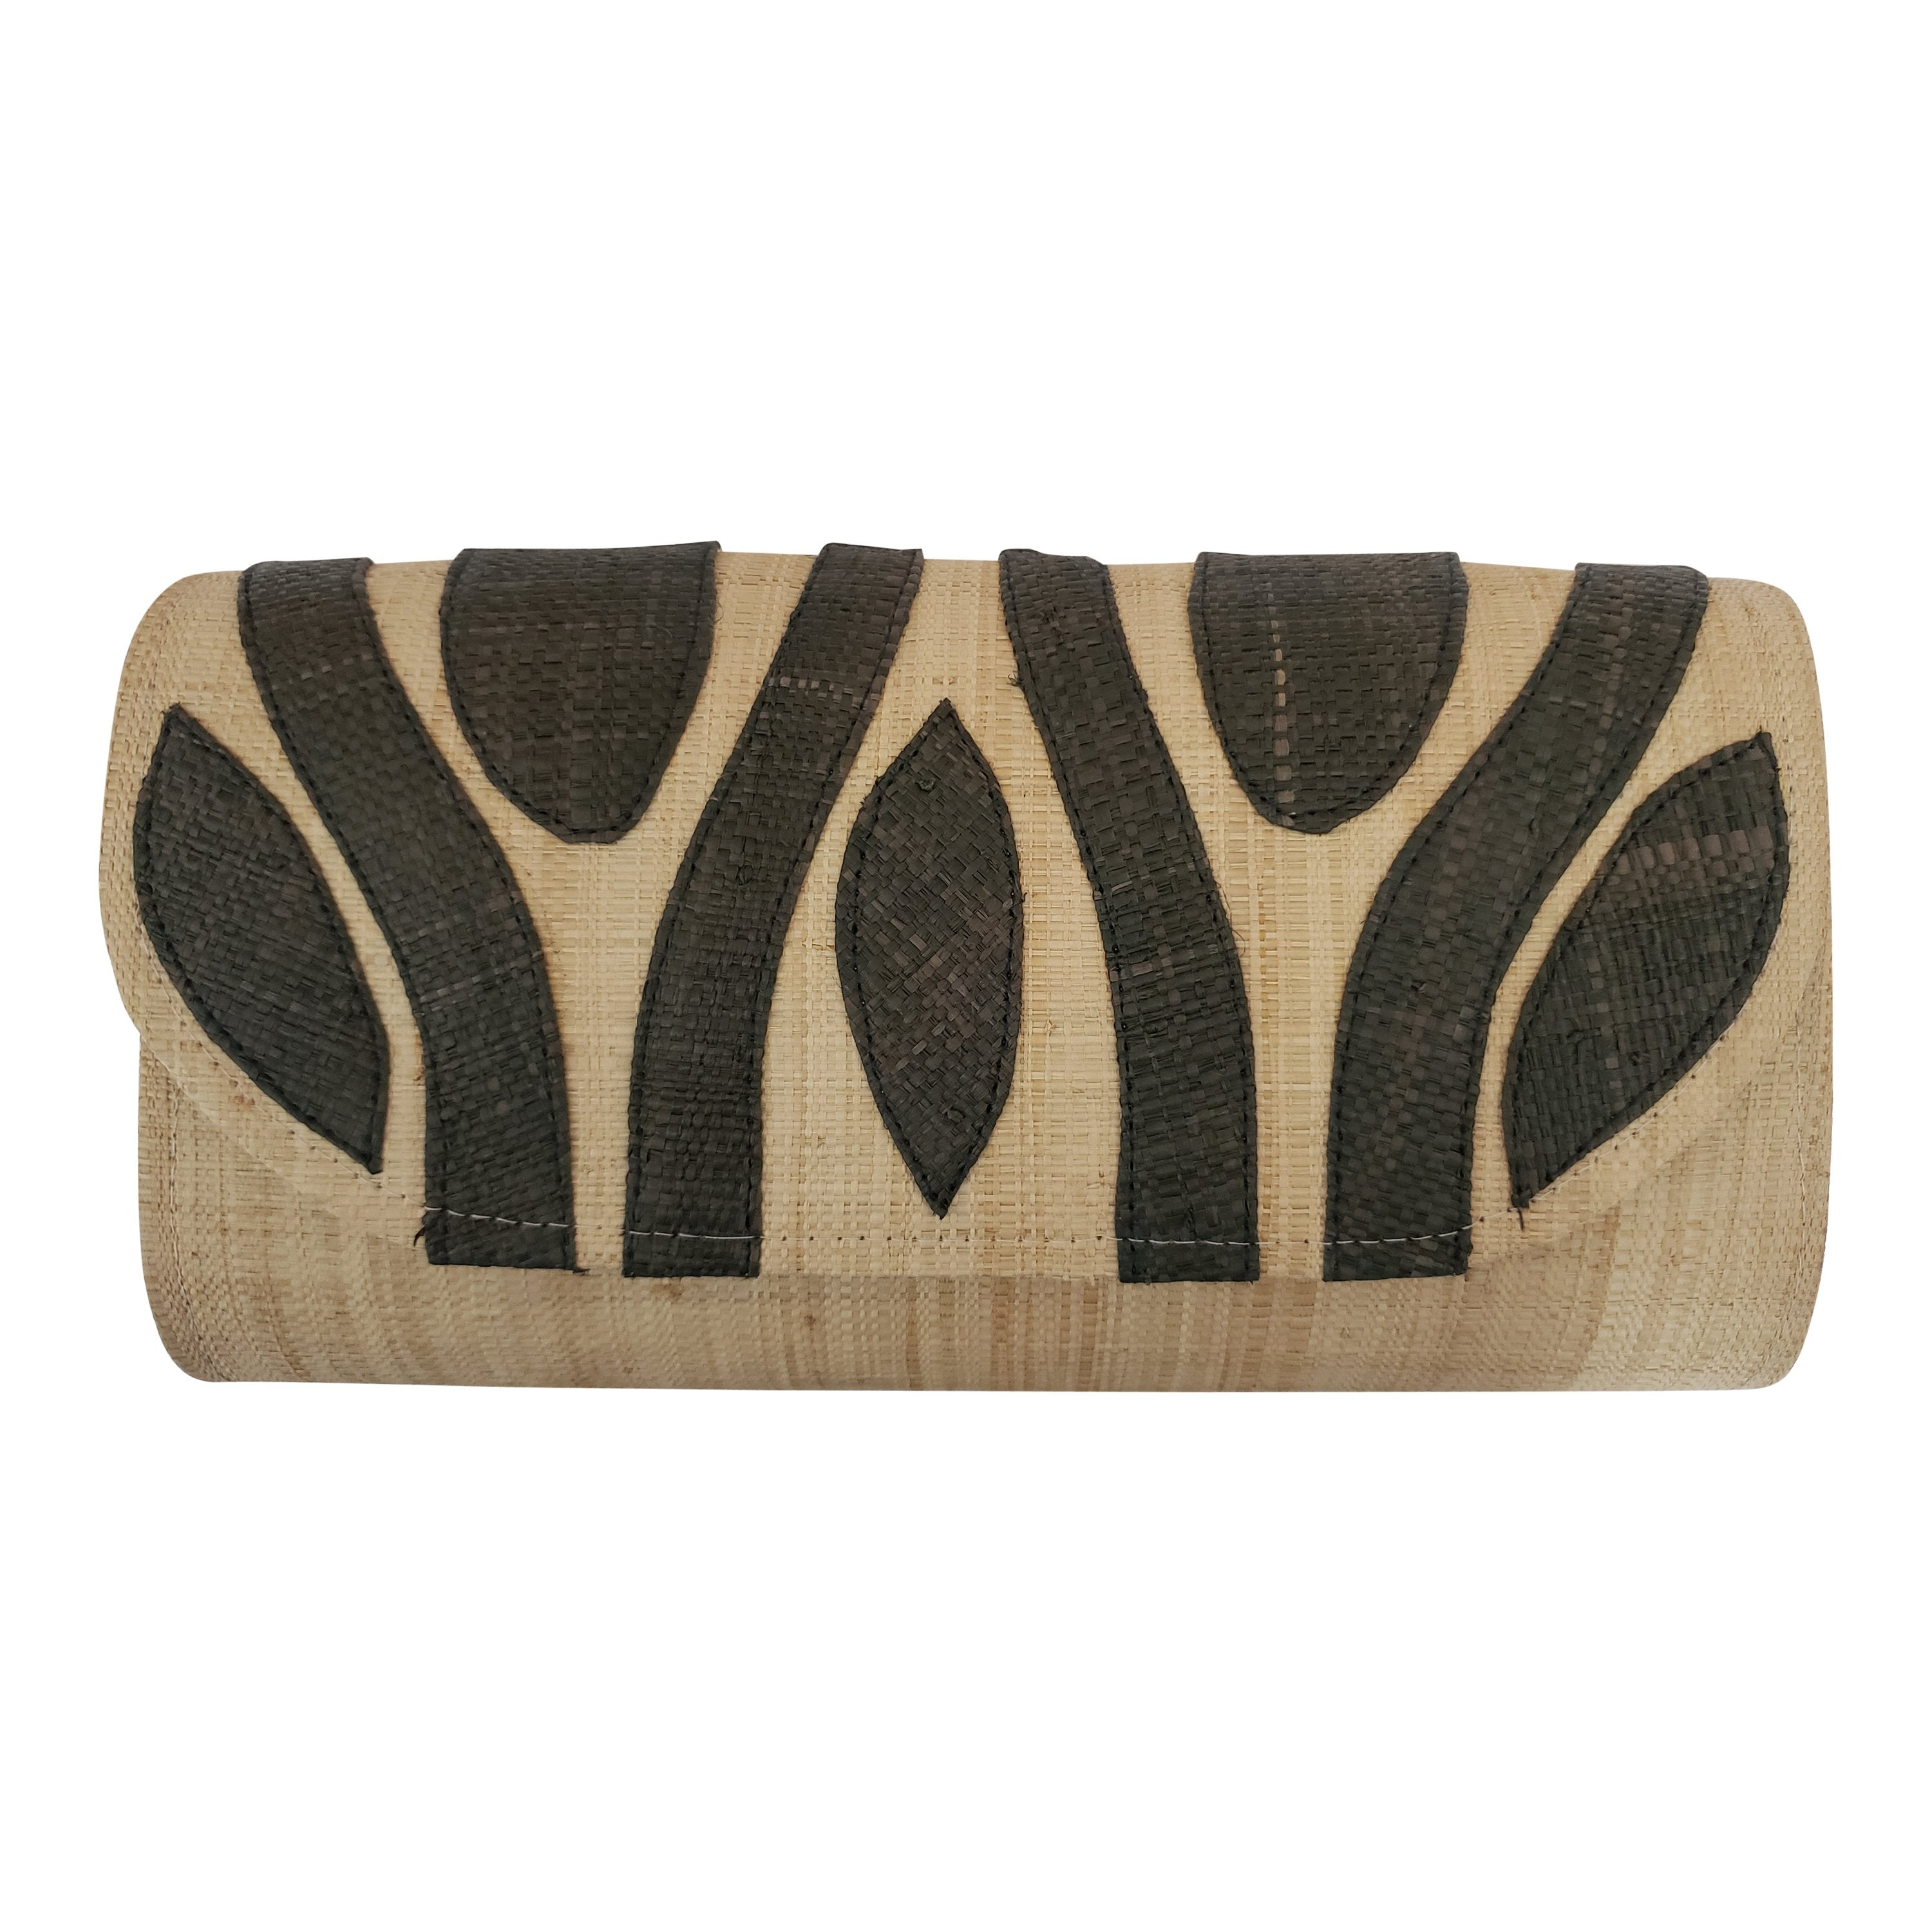 Authentic Handwoven Natural Madagascar Raffia Clutch with Black Accents